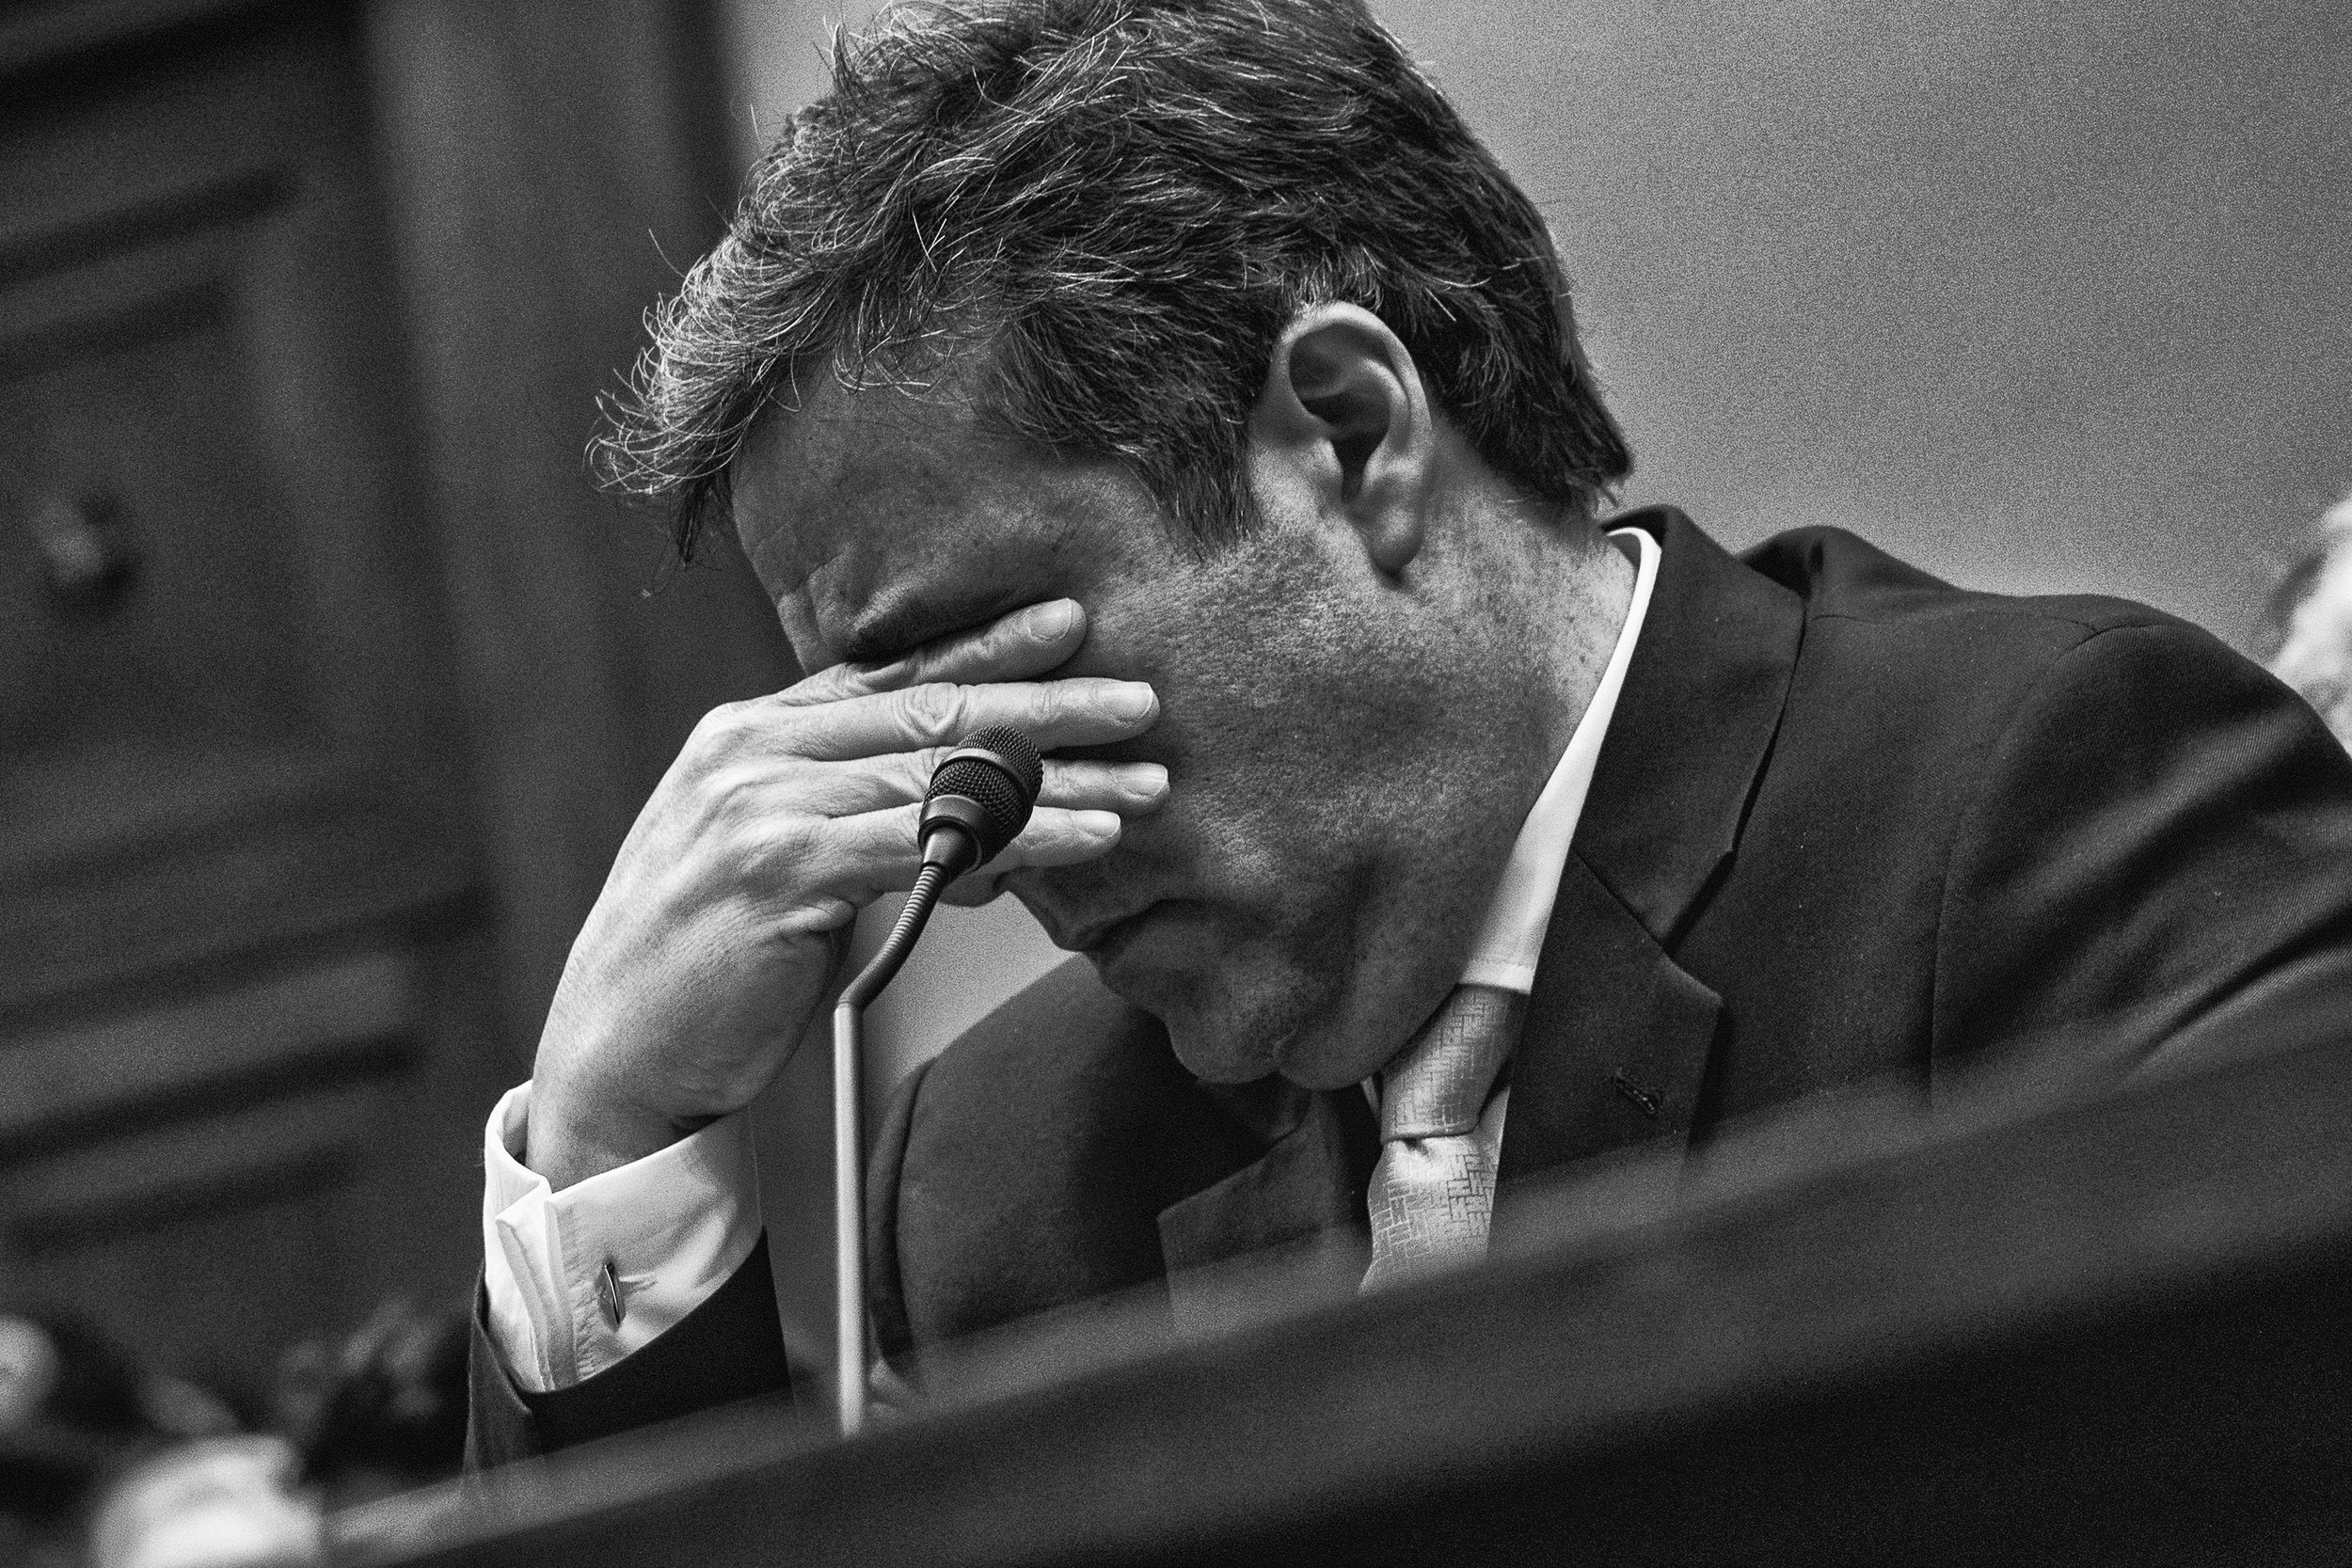 Day 769: Michael Cohen, former attorney to US President Donald J. Trump, tears up while listening to the closing statement of Chairman Elijah Cummings before the House Committee on Oversight and Reform, in Washington, DC on February 27, 2019.